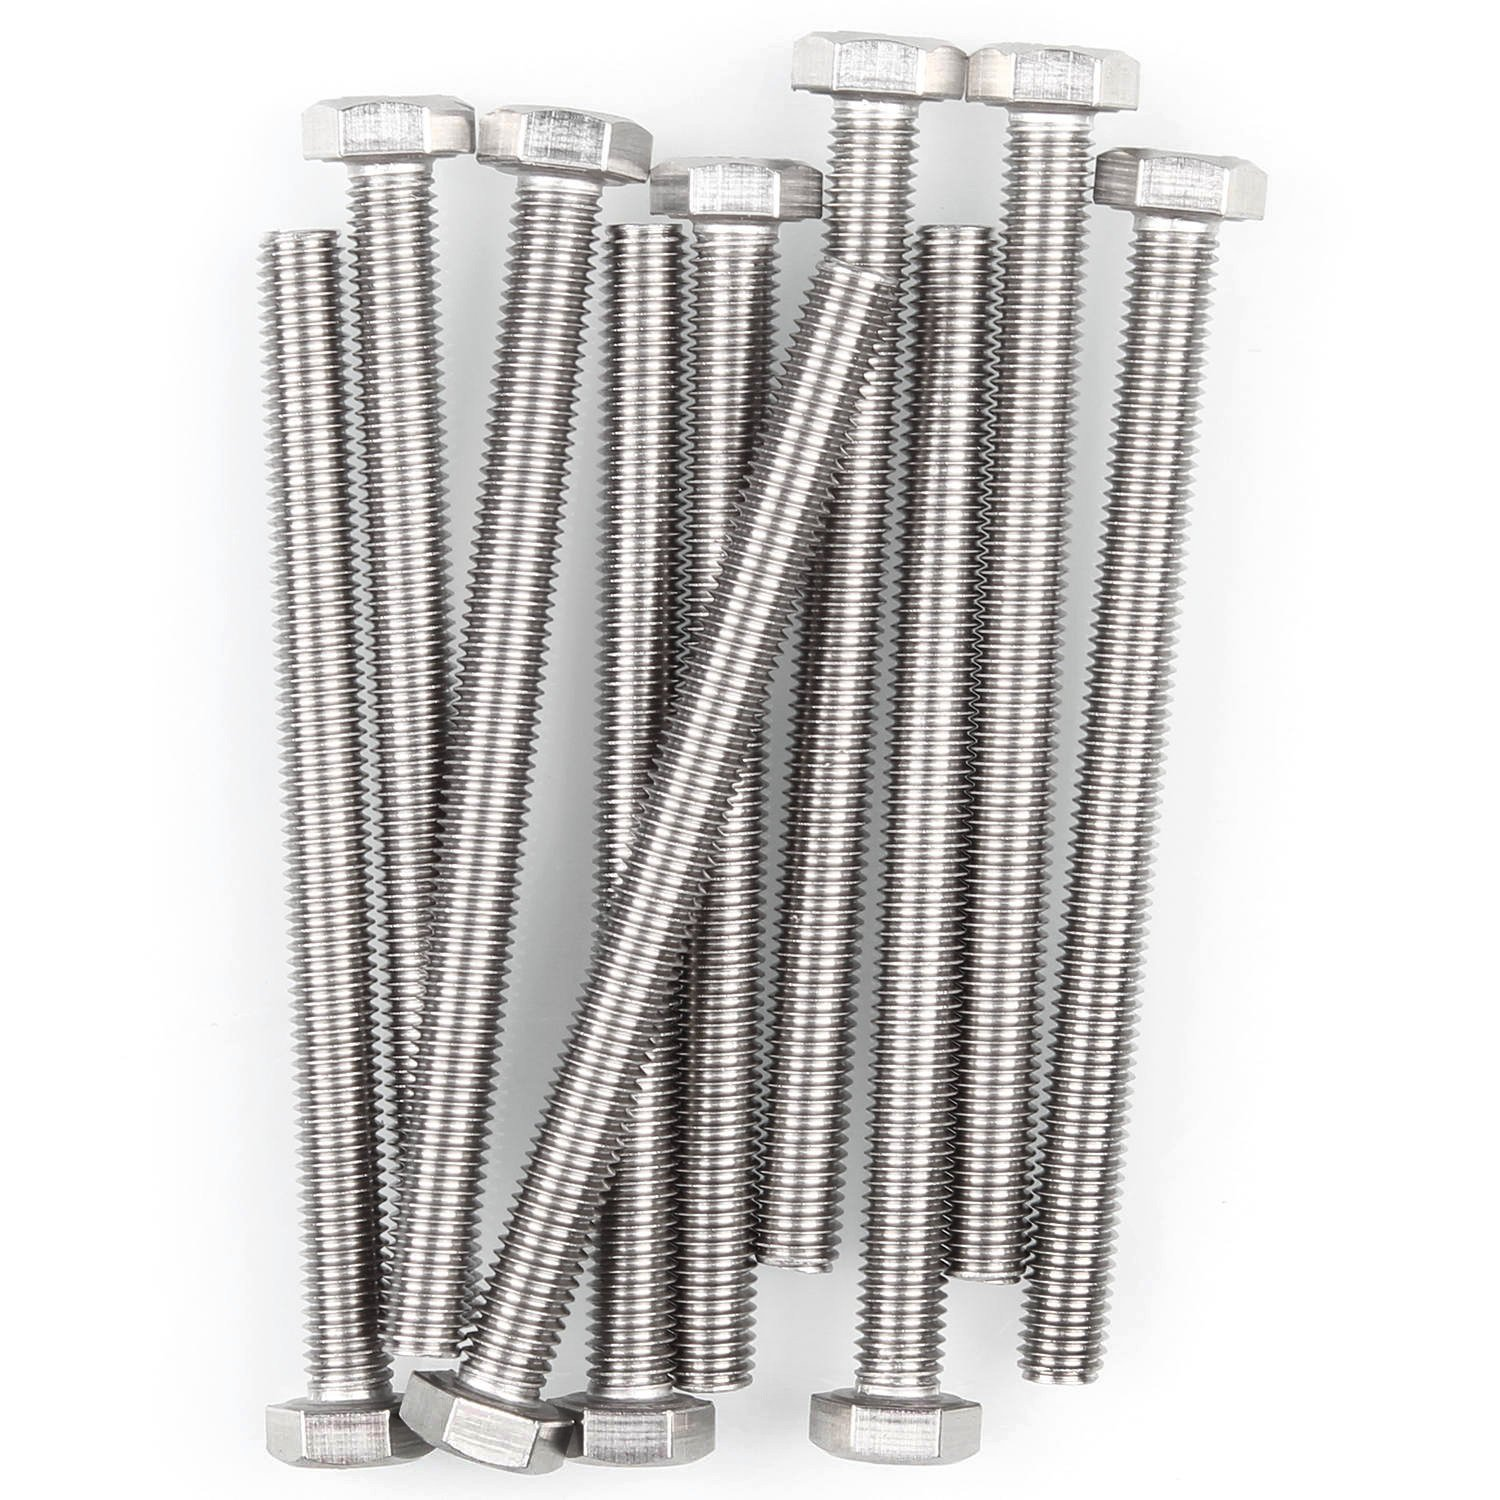 304 10 Pcs M8-1.25 x 100mm Hex Head Screw Bolts Eliseo M8 Hex Bolt A2-70 Stainless Steel Fully Threaded Hex Tap Bolts